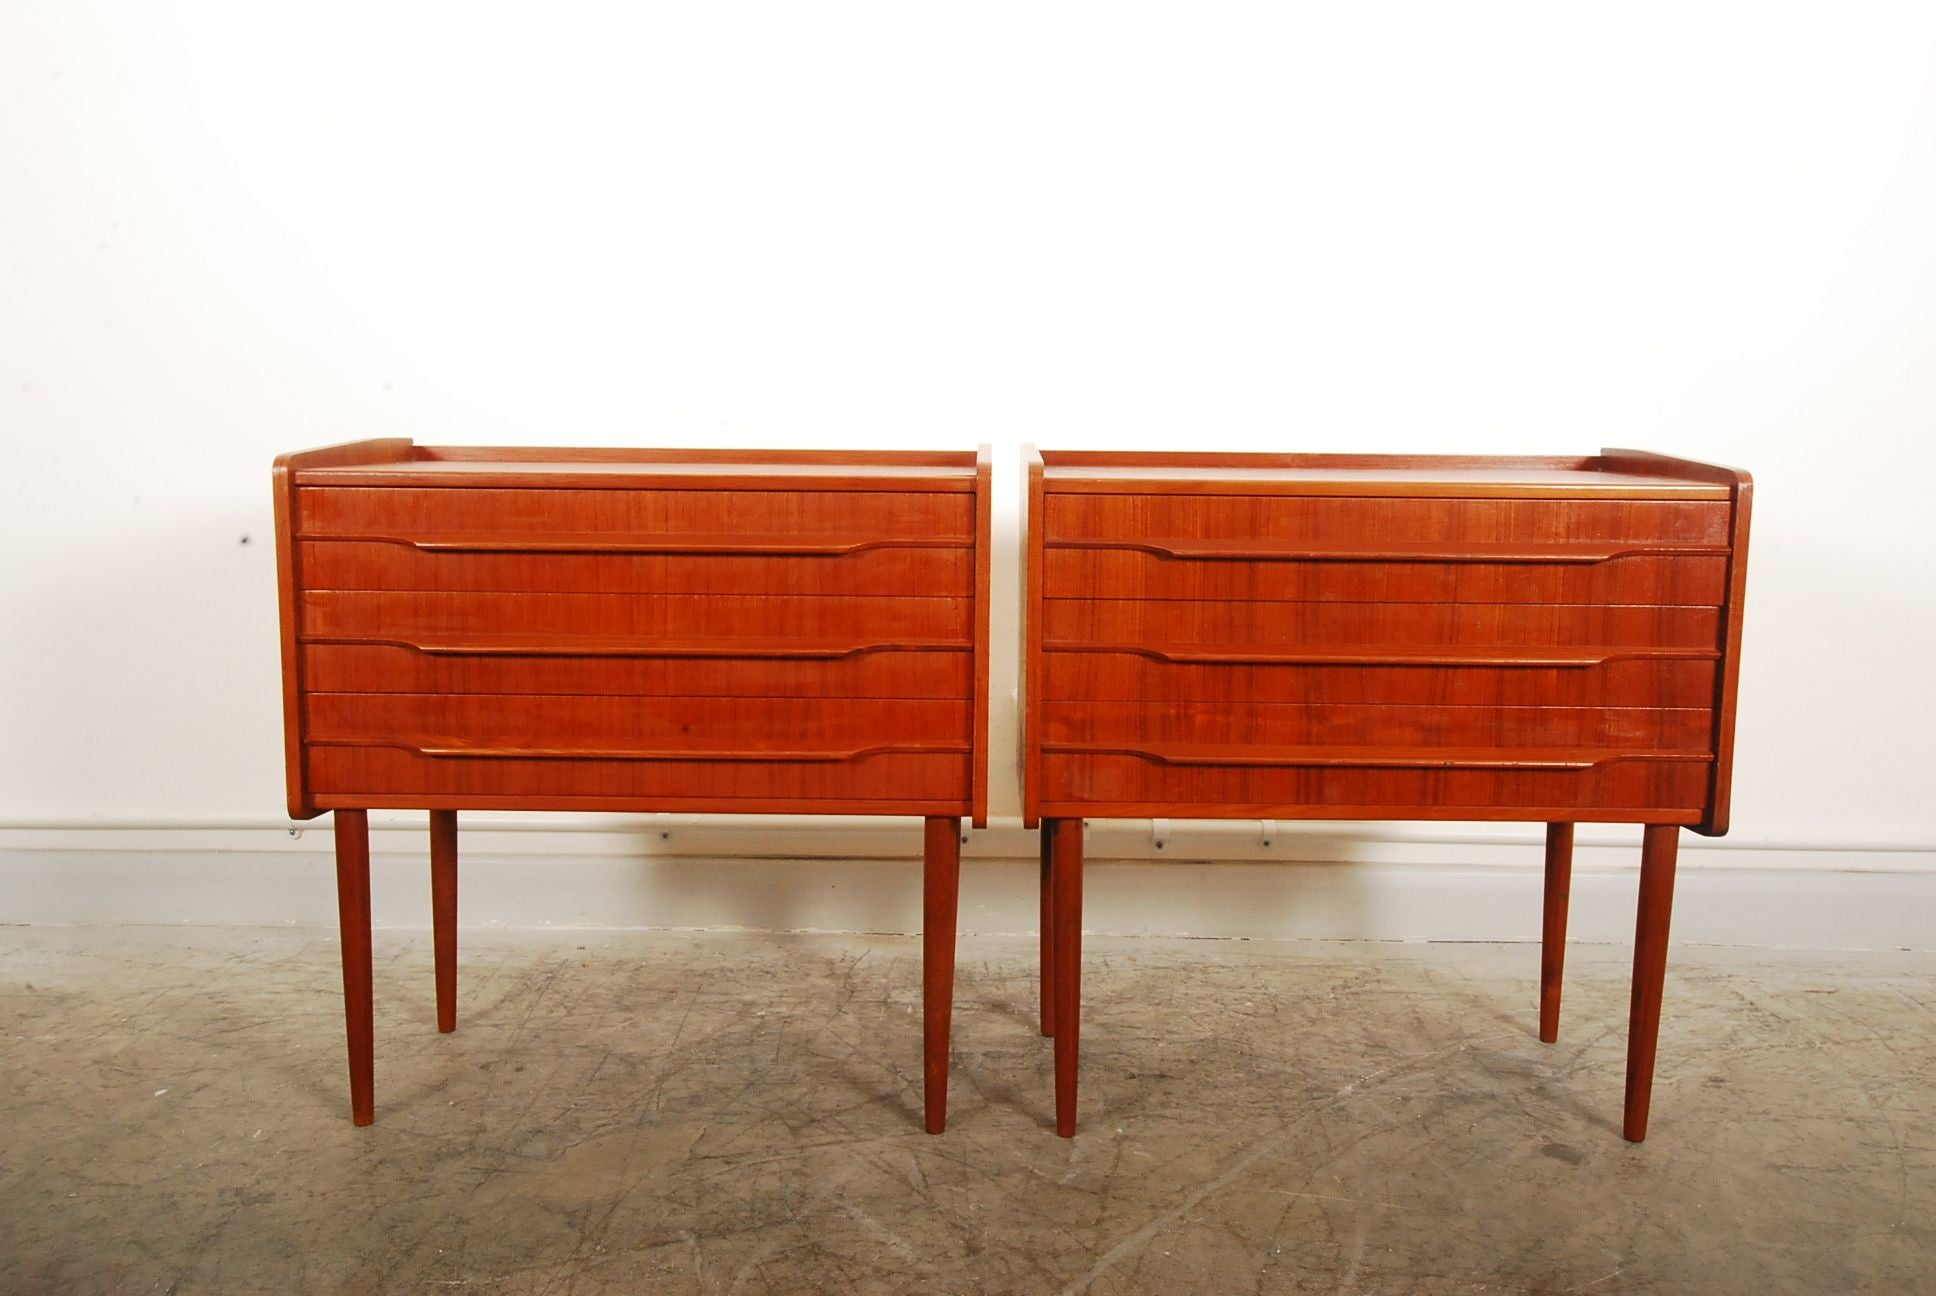 Pair of low chests / bedside tables